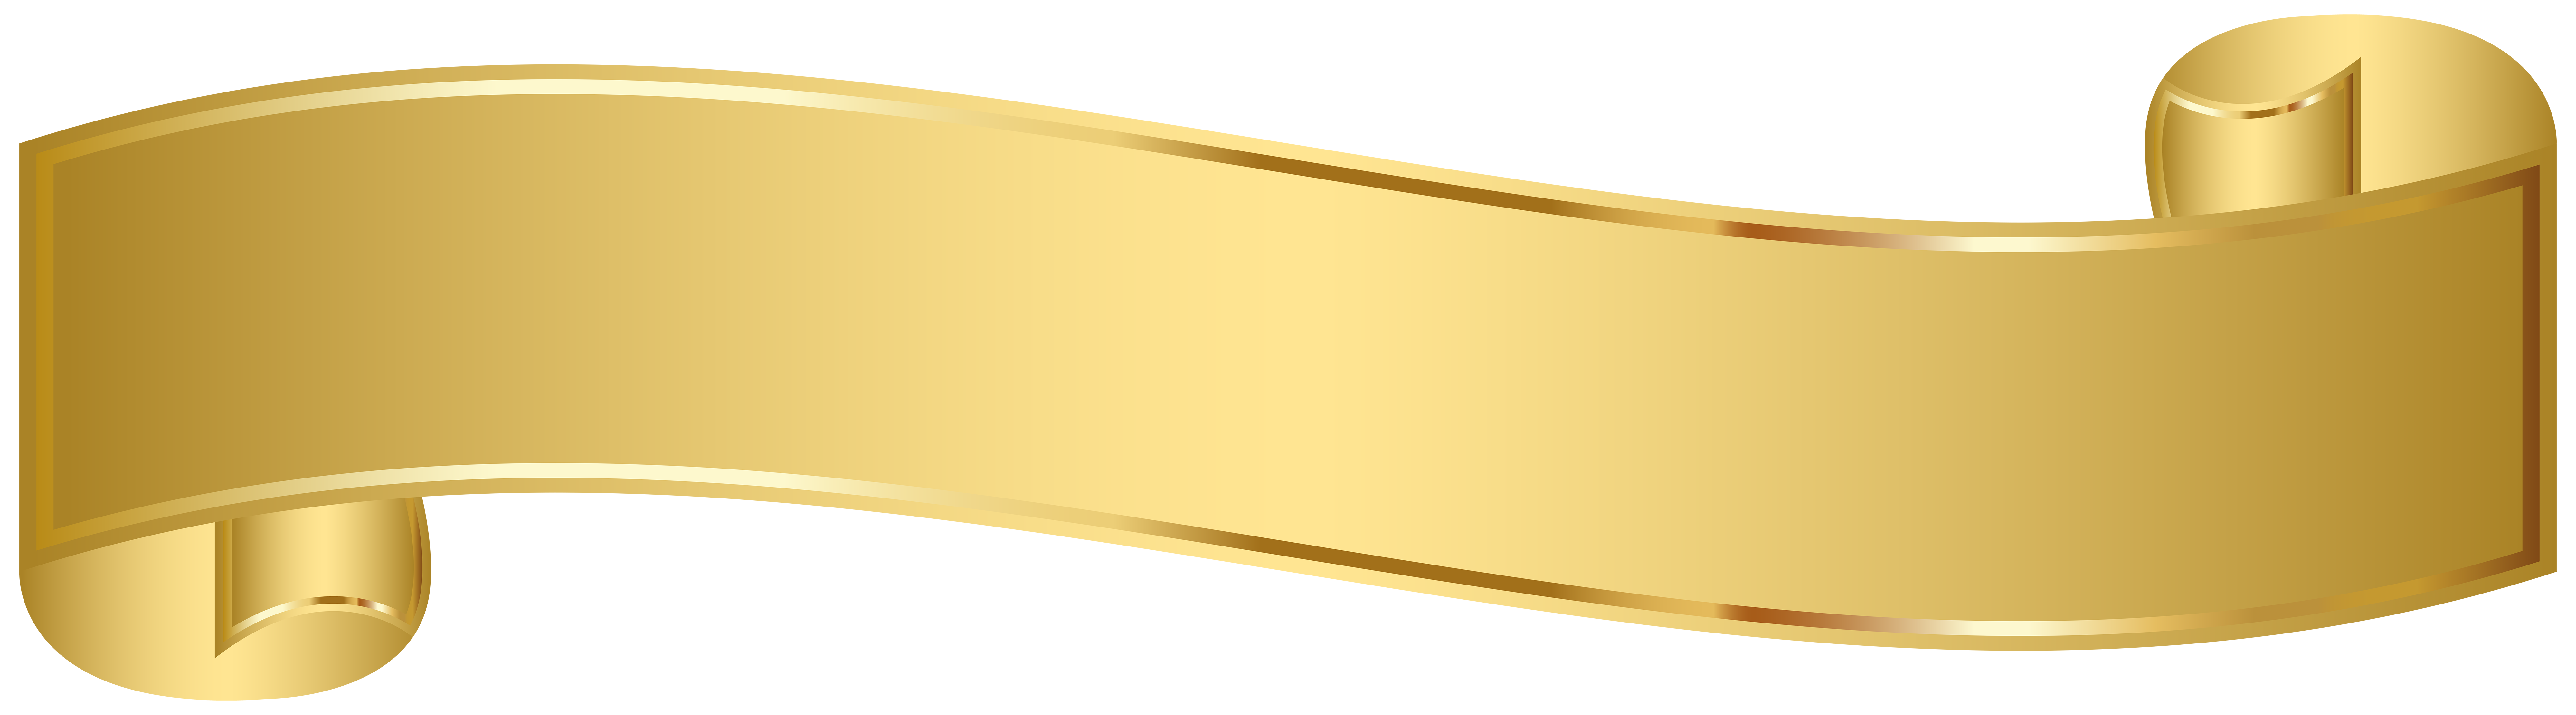 Gold ribbon banner png. Collection of clipart